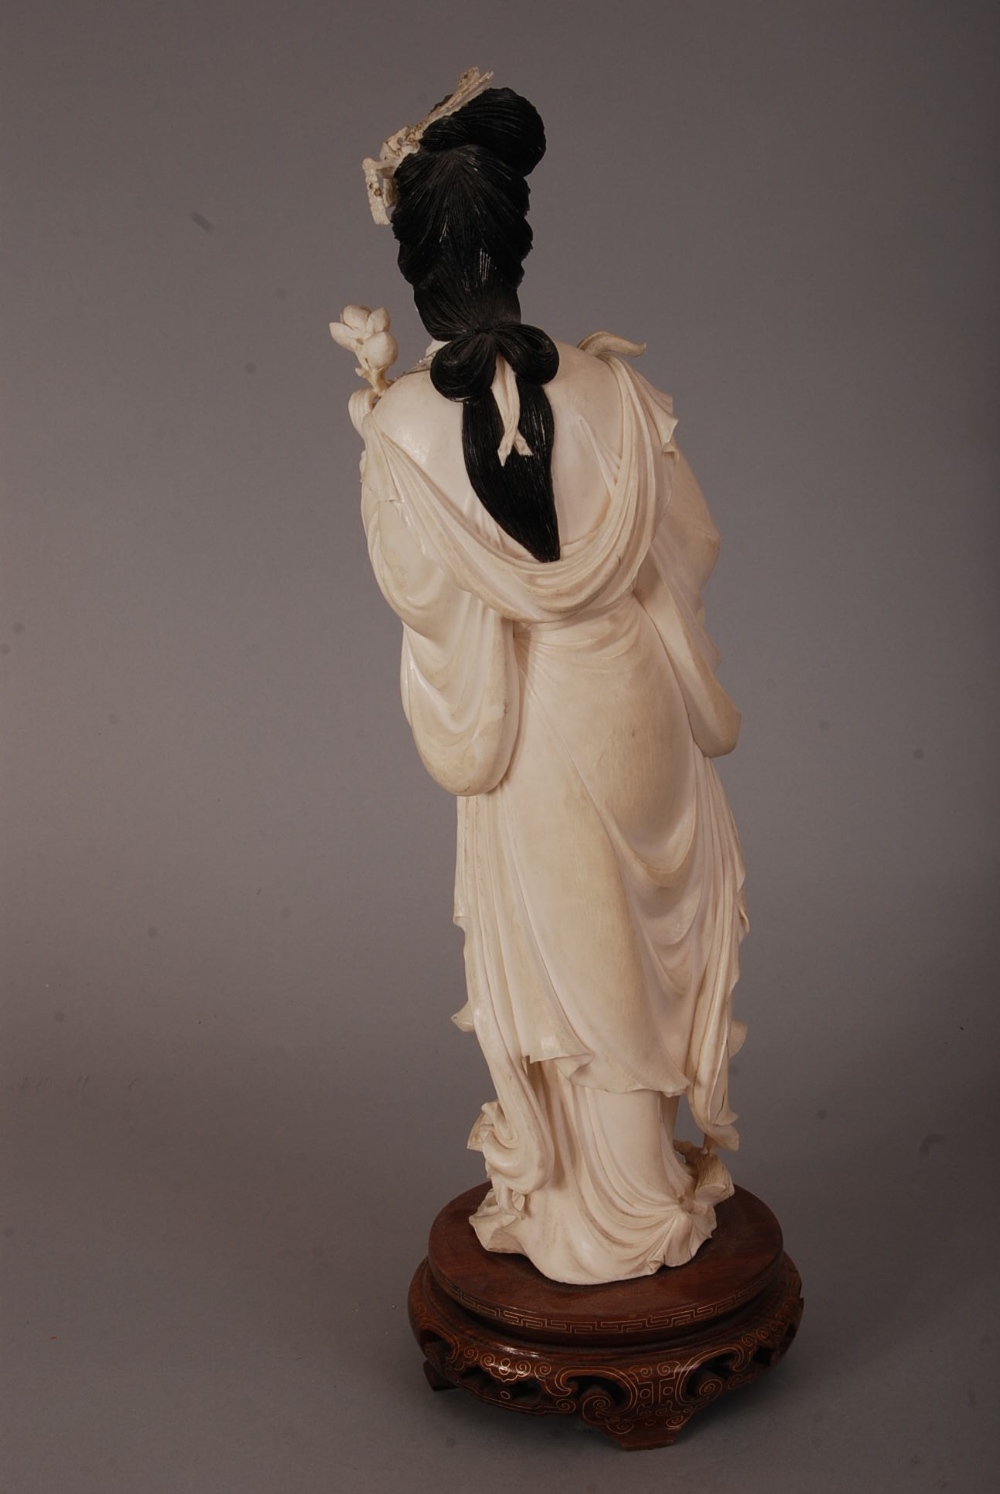 Lot 55 - C19th Chinese carved ivory figure of a lady, holding a flower spray and wearing long robes, wood